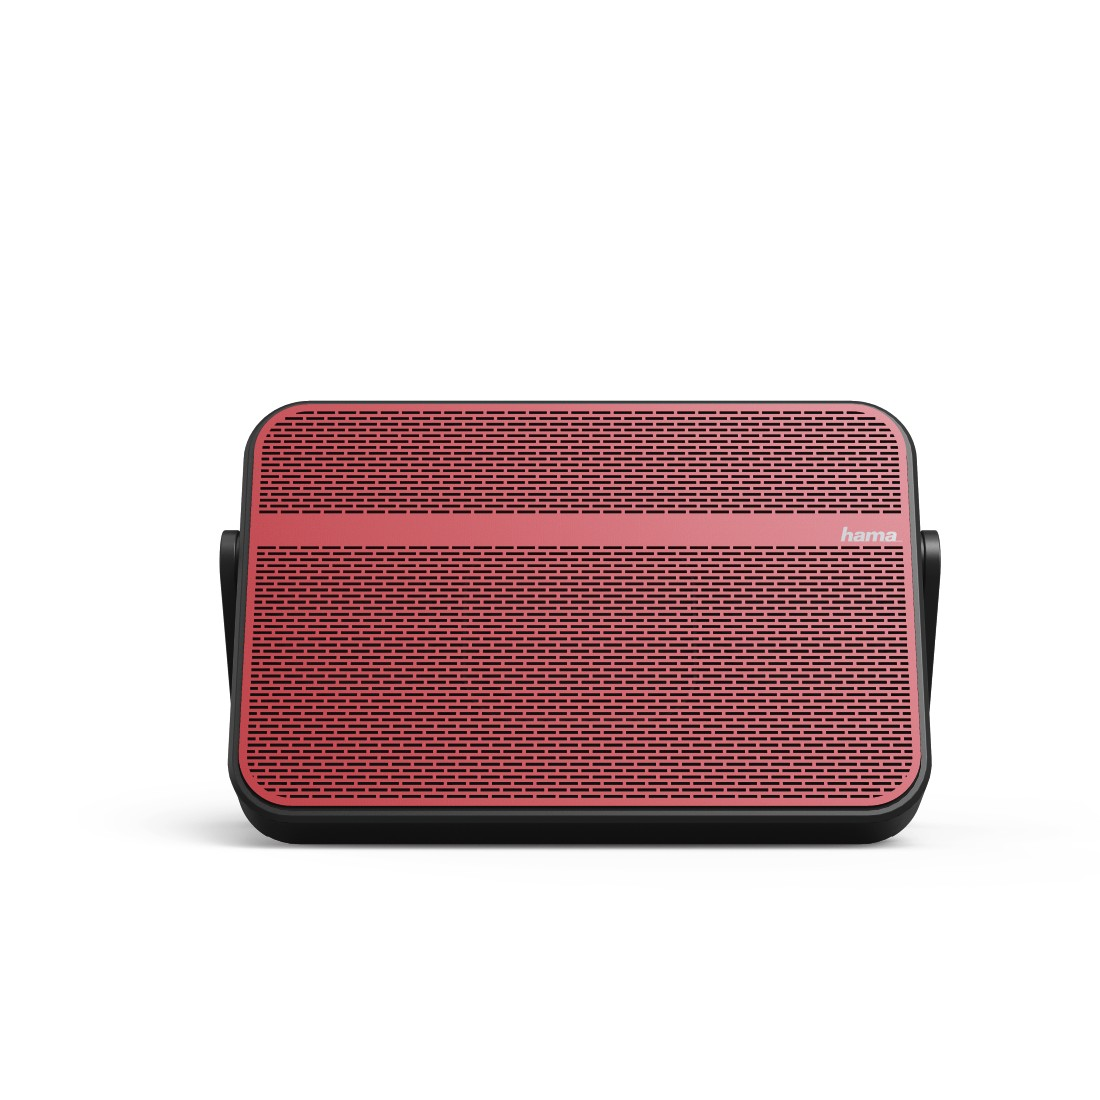 abx2 High-Res Image 2 - Hama, Blade Mobile Bluetooth Speaker, red/black